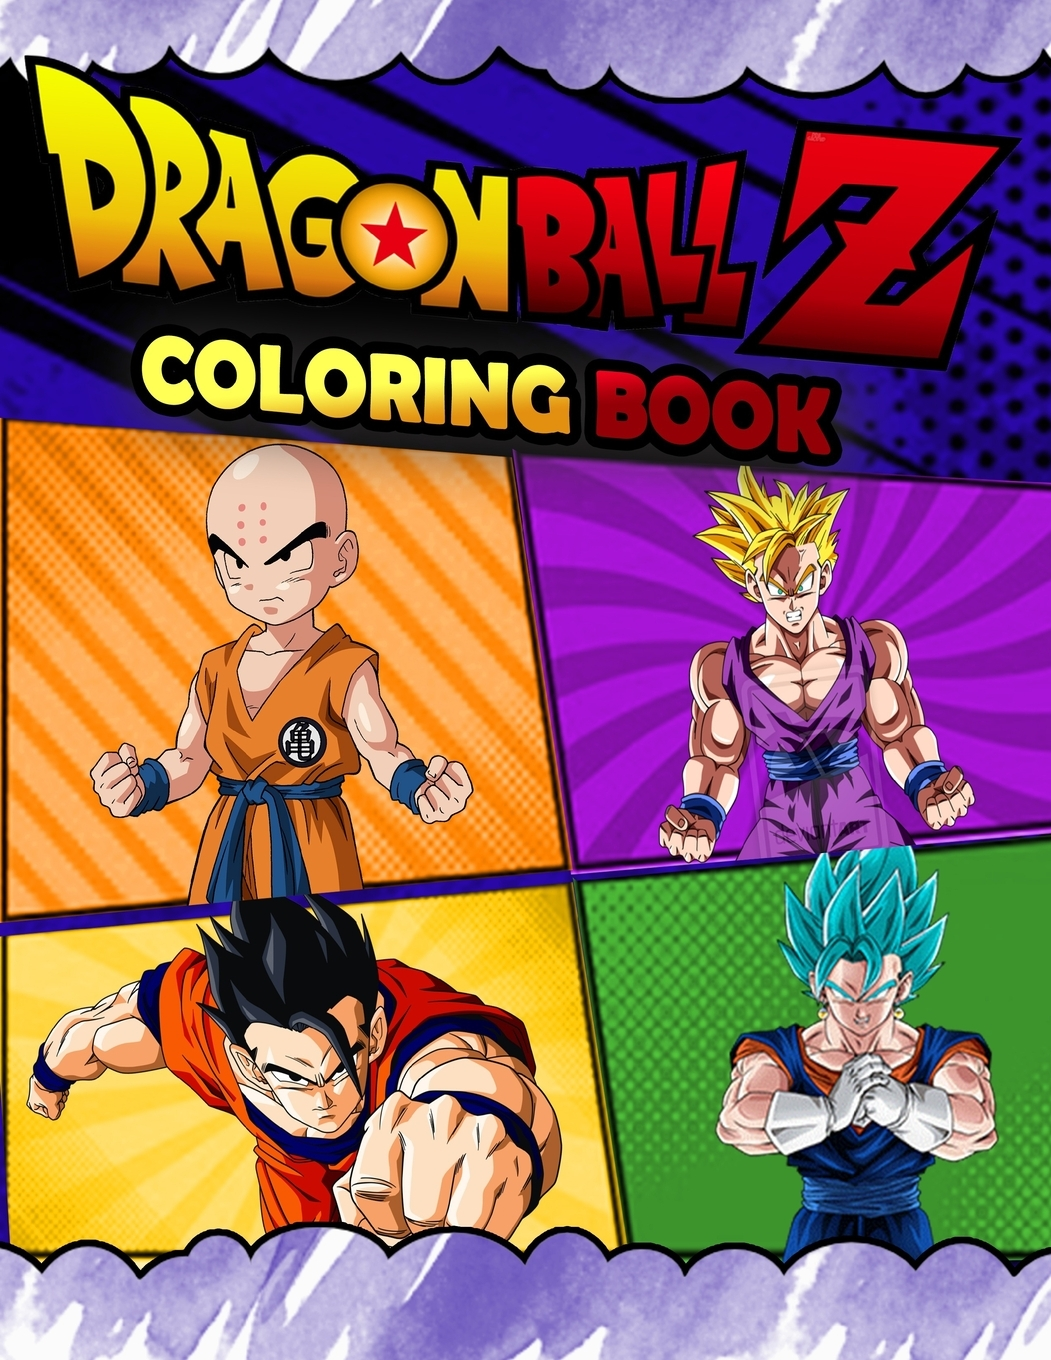 - Dragon Ball Z Coloring Book : Dragon Ball Z Jumbo Coloring Book With  Amazing Images For All Ages (Paperback) - Walmart.com - Walmart.com